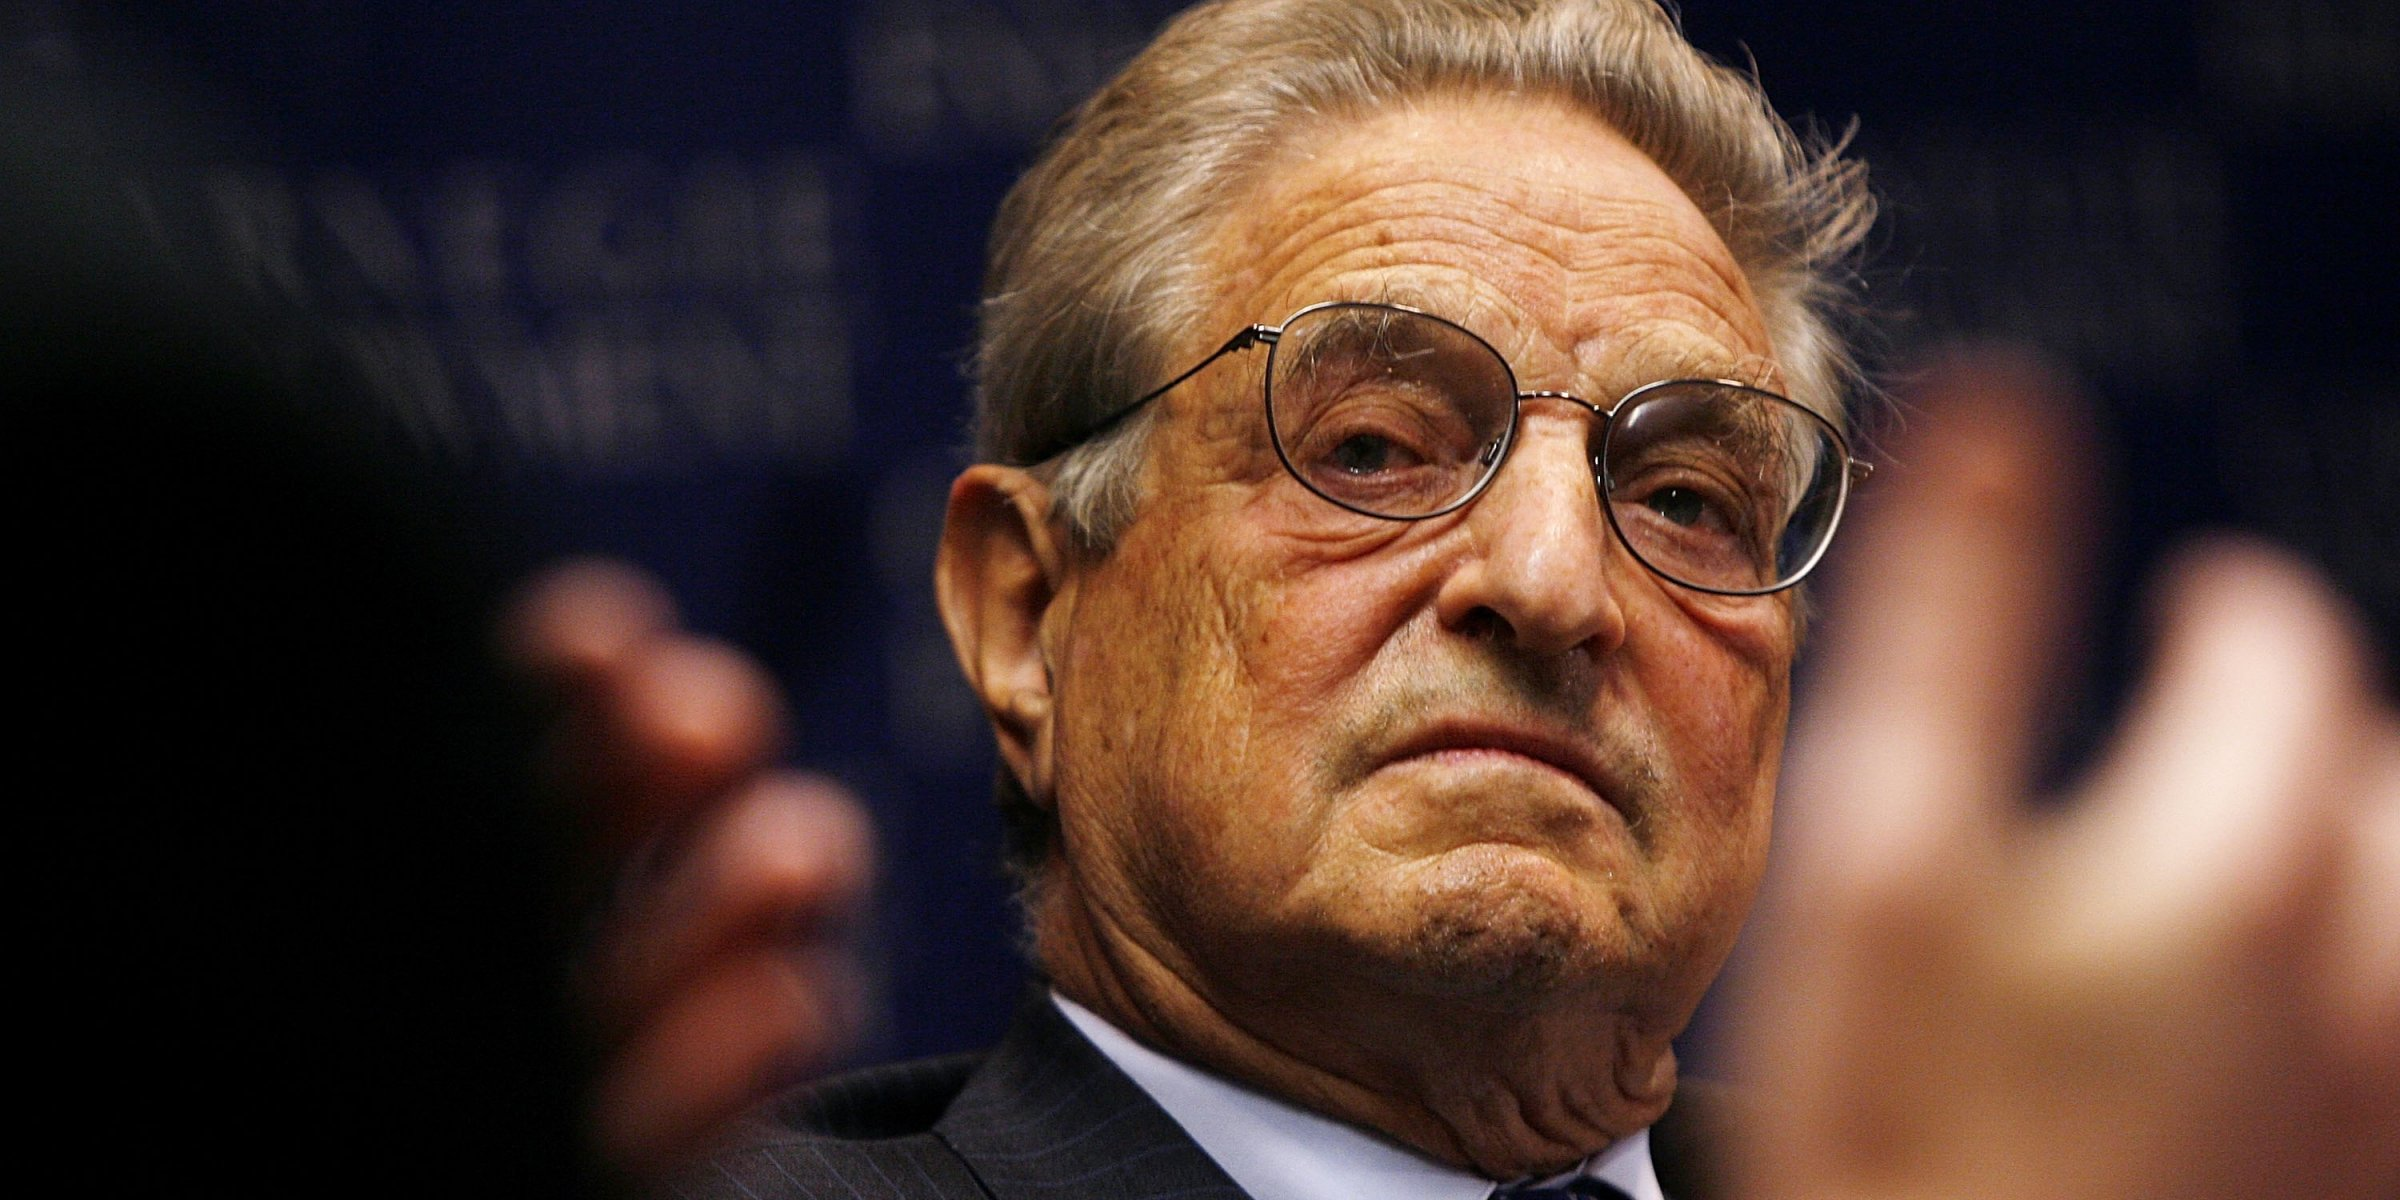 George Soros Has Harsh Words For Facebook And Google